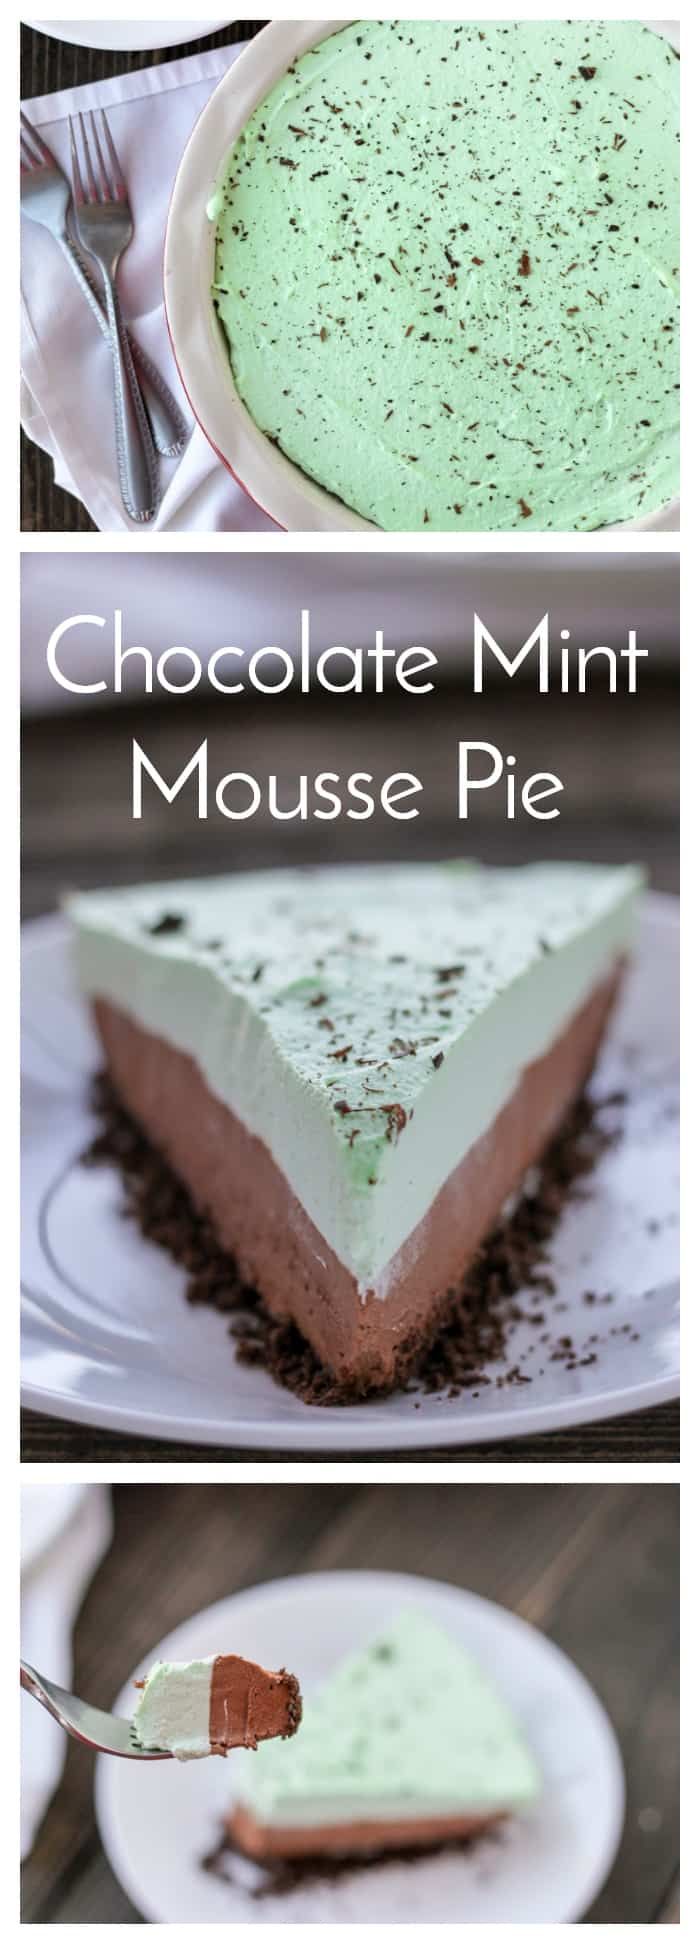 Chocolate crust, creamy chocolate mousse and mint cream topping all come together to make this beautiful Chocolate Mint Mousse Pie! #EasyRecipe #Chocolate #Pie #ChocolateMint #Dessert  via @nmburk